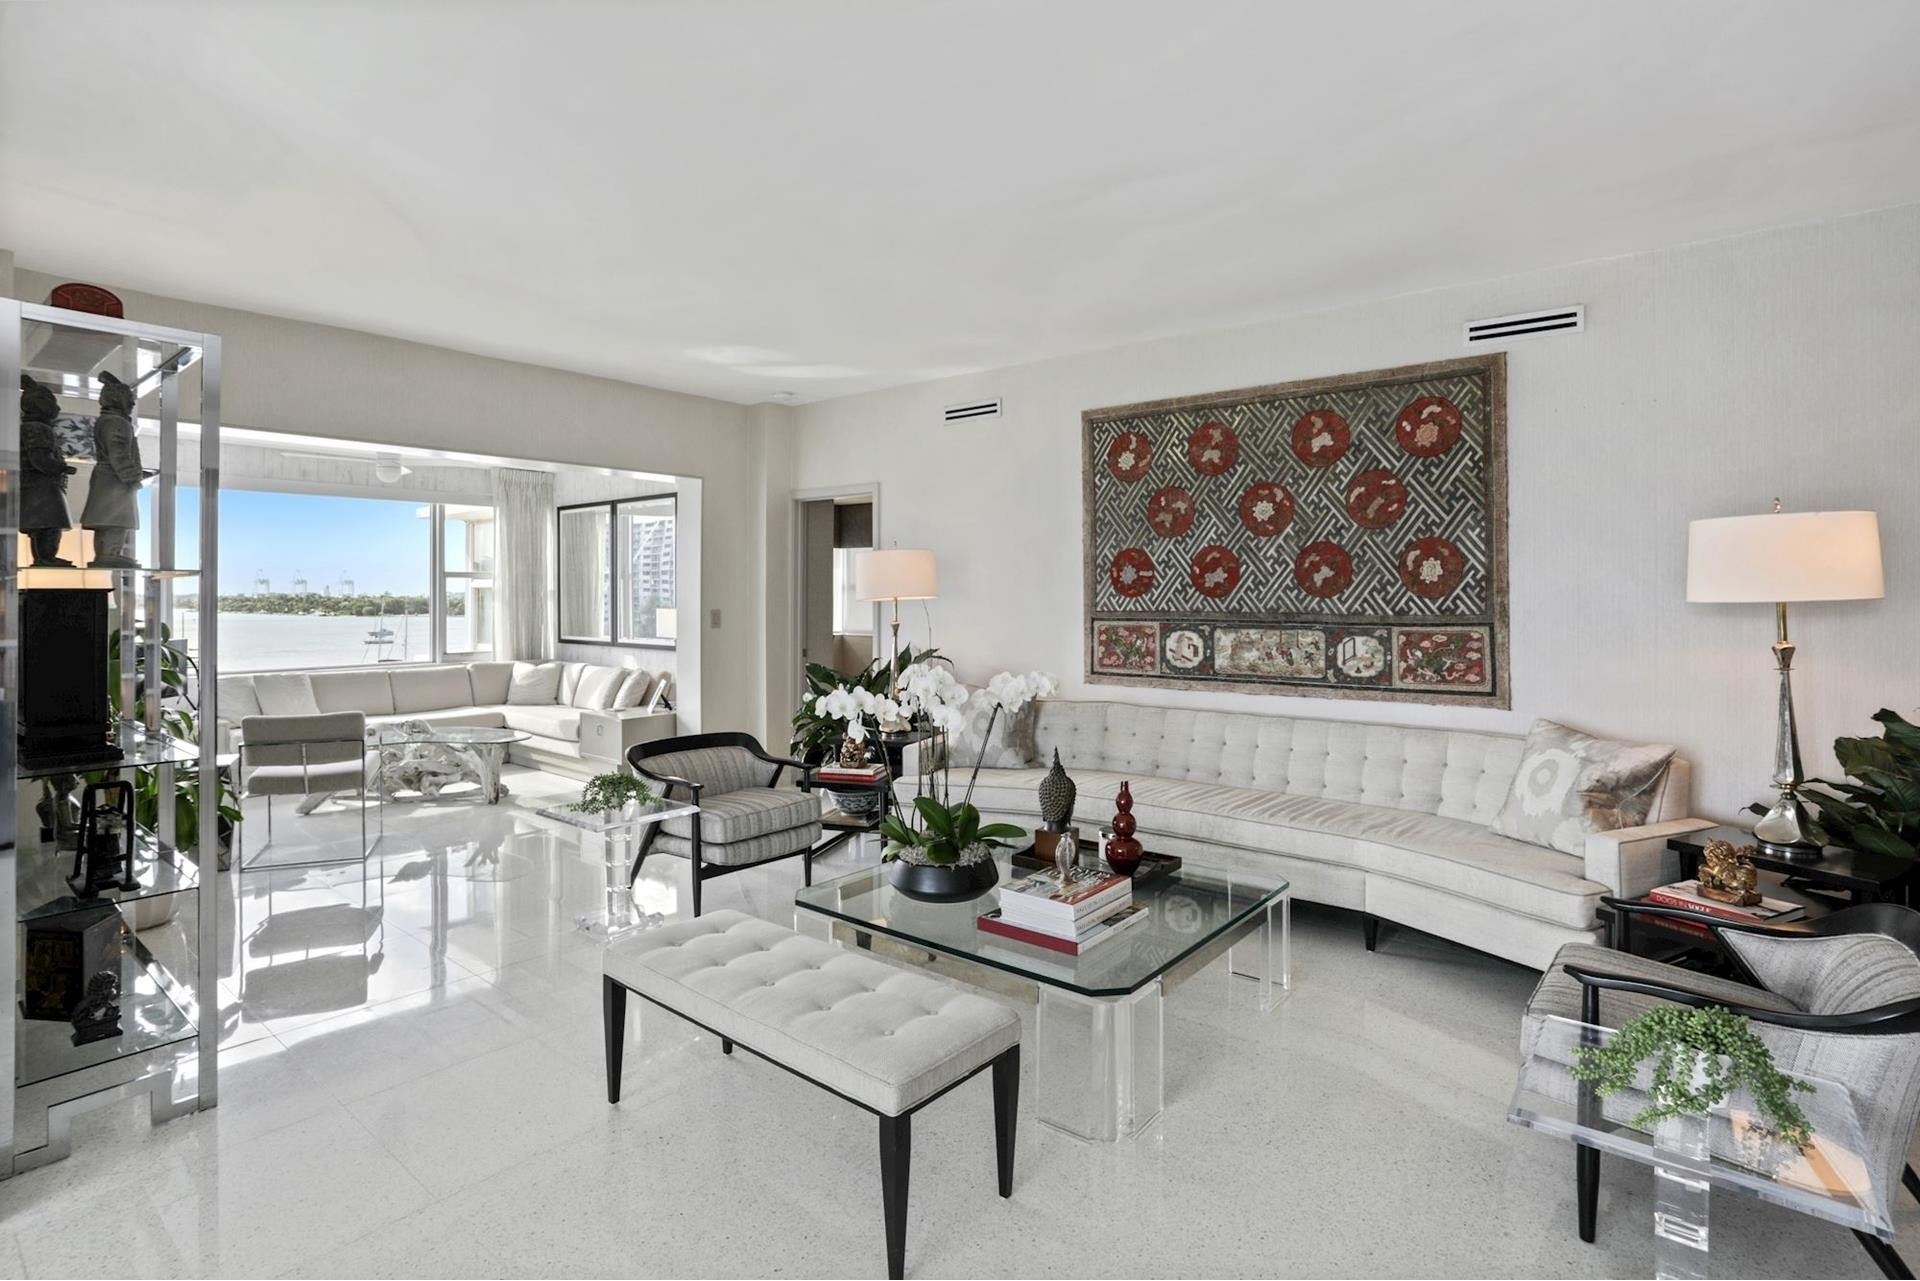 Property at 16 Island Ave , 6A/6F Belle Isle, Miami Beach, FL 33139